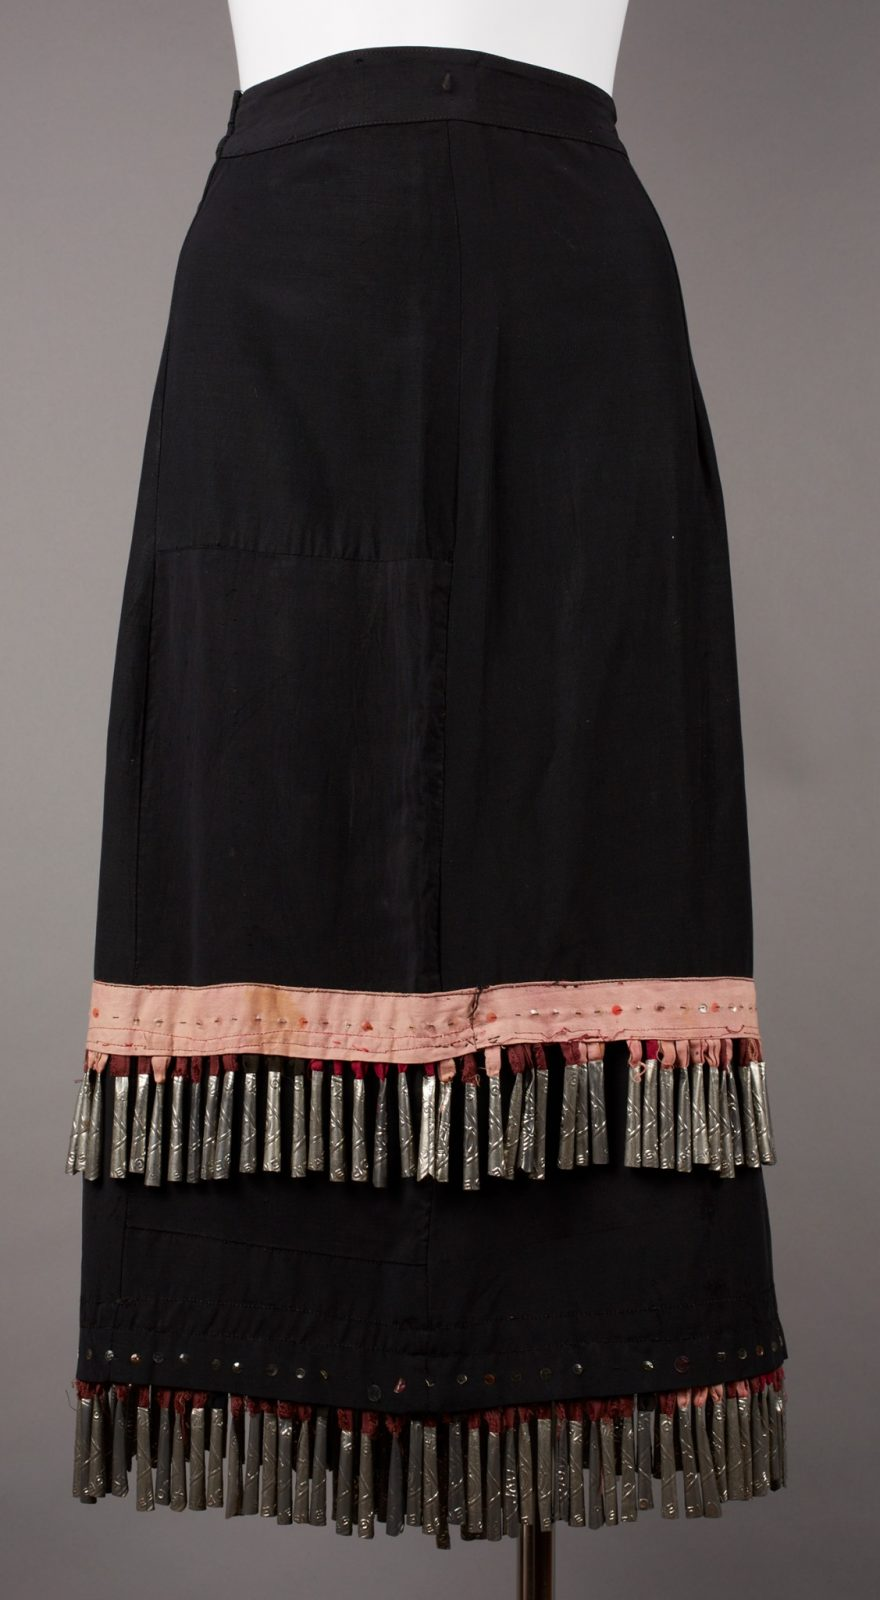 Ojibwa artist, Skirt, 27 x 31 ½ inches, cotton, plastic buttons, tin, and sequins. A long, black, slightly A- line shaped skirt decorated with two rows of metal jingles and a pale, peach stitched, fabric strip. The skirt has a flat waistband, fastens on the right side and falls in a slight flare to the hem. At lower calf level a faded peach colored strip of fabric bisects the skirt. It is embellished with a row of sequins in the middle and bordered by a line of black stitching at top and two lines of red stitching below. Jingles hang from under this strip from fabric loops in shades of red, brick, peach and black. The black skirt continues to the hem and finishes with another row of sequins on black with jingles on fabric loops extending from under the hem. The main body of the skirt is pieced in places, especially at the lower right where several rectangles of black fabric are stitched together to make up the garment. A center seam runs vertically down the skirt.